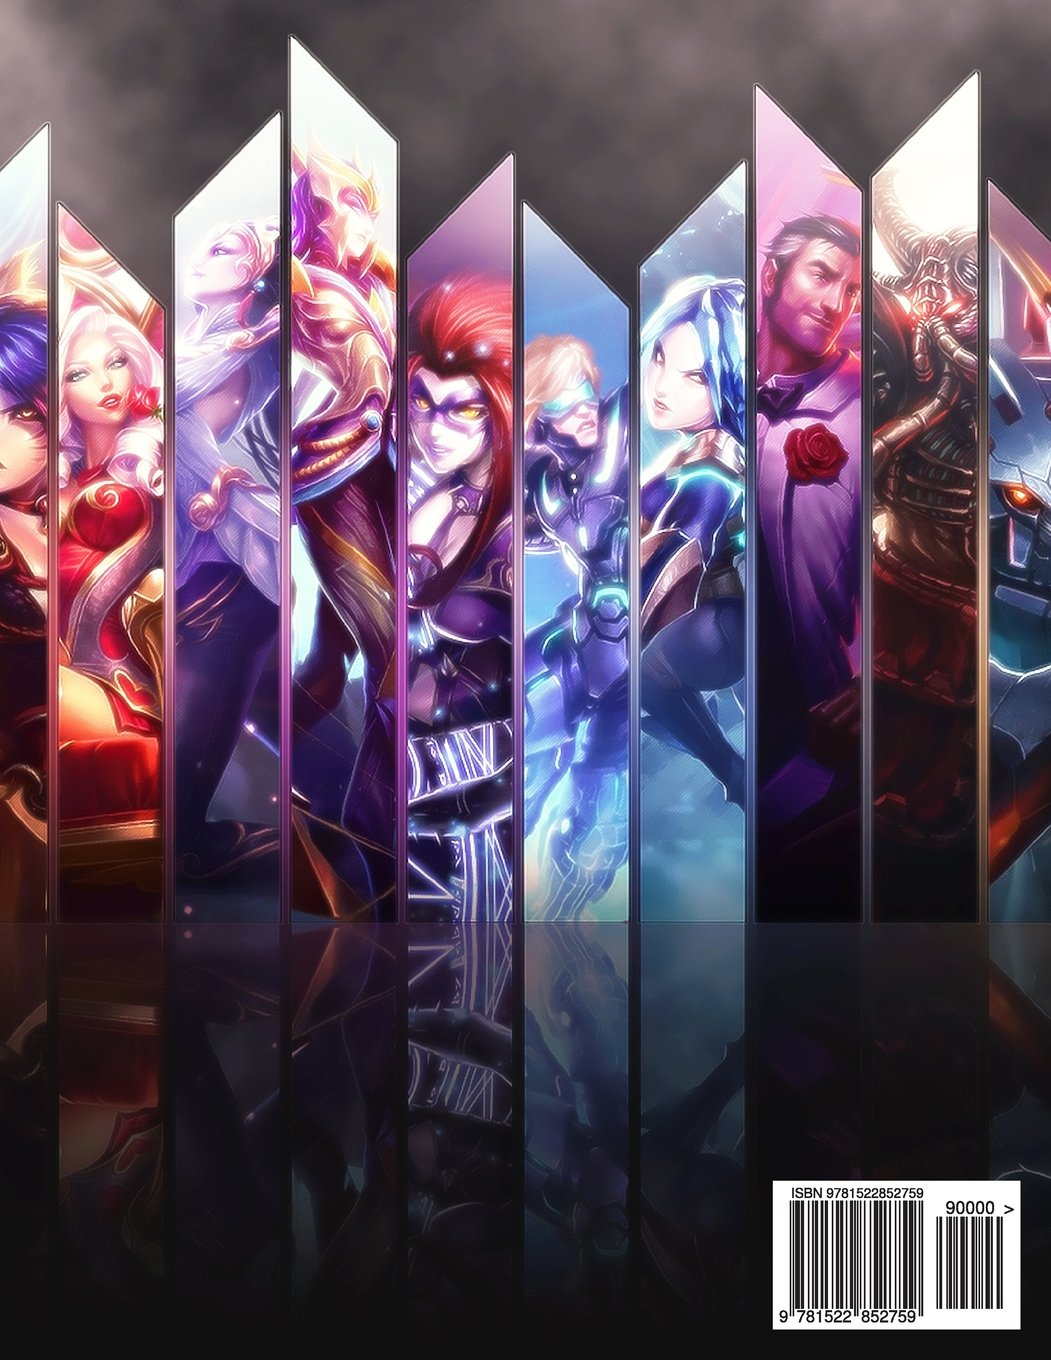 League Of Legends Creative Colouring LOL LoL Gamer Esports Riot Games Gaming Books Twitch Nightblue3